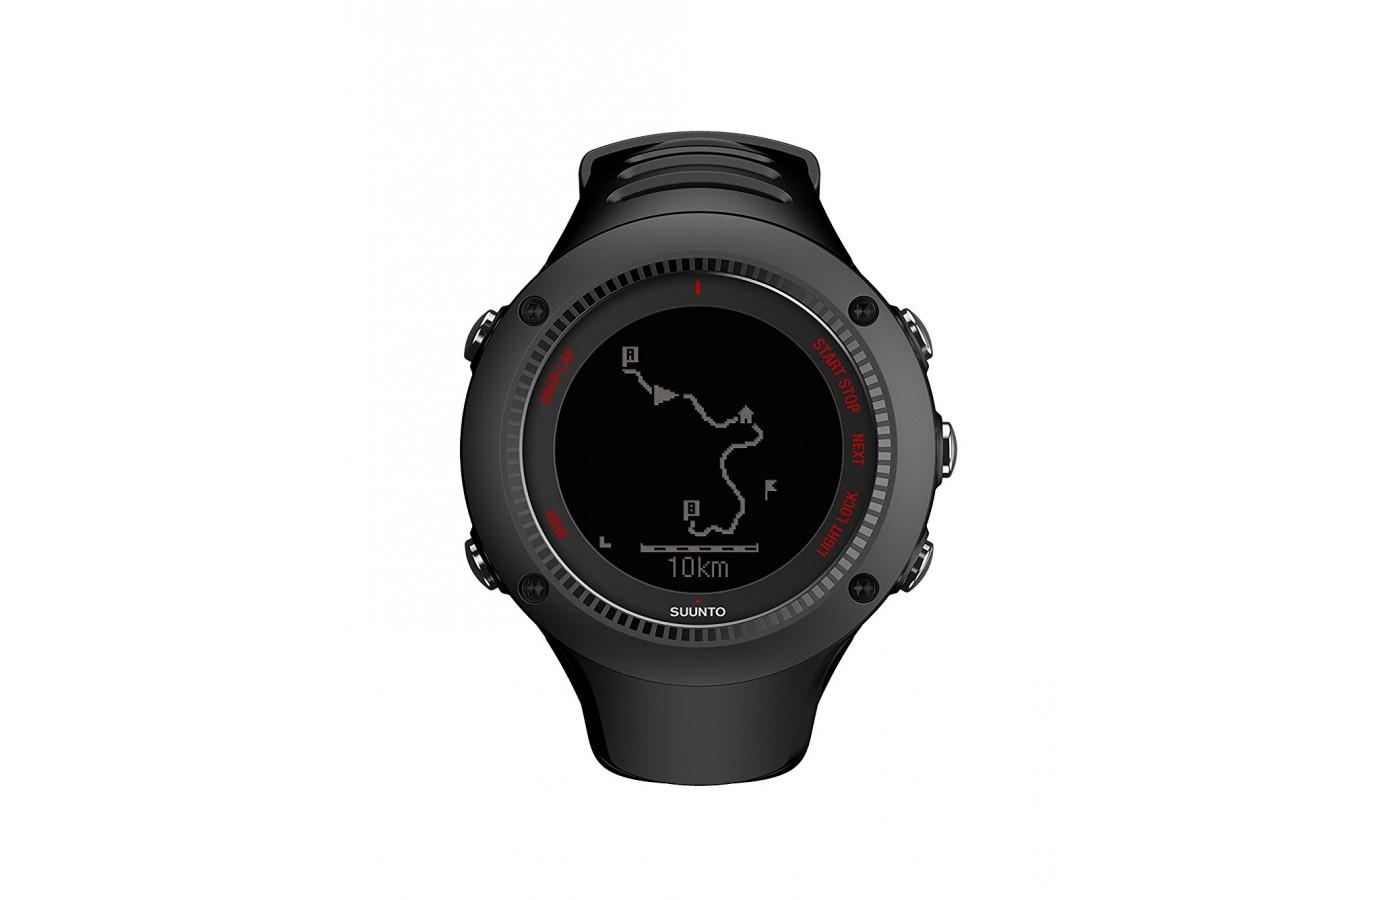 the Suunto Ambit3 Run features a highly accurate built-in GPS